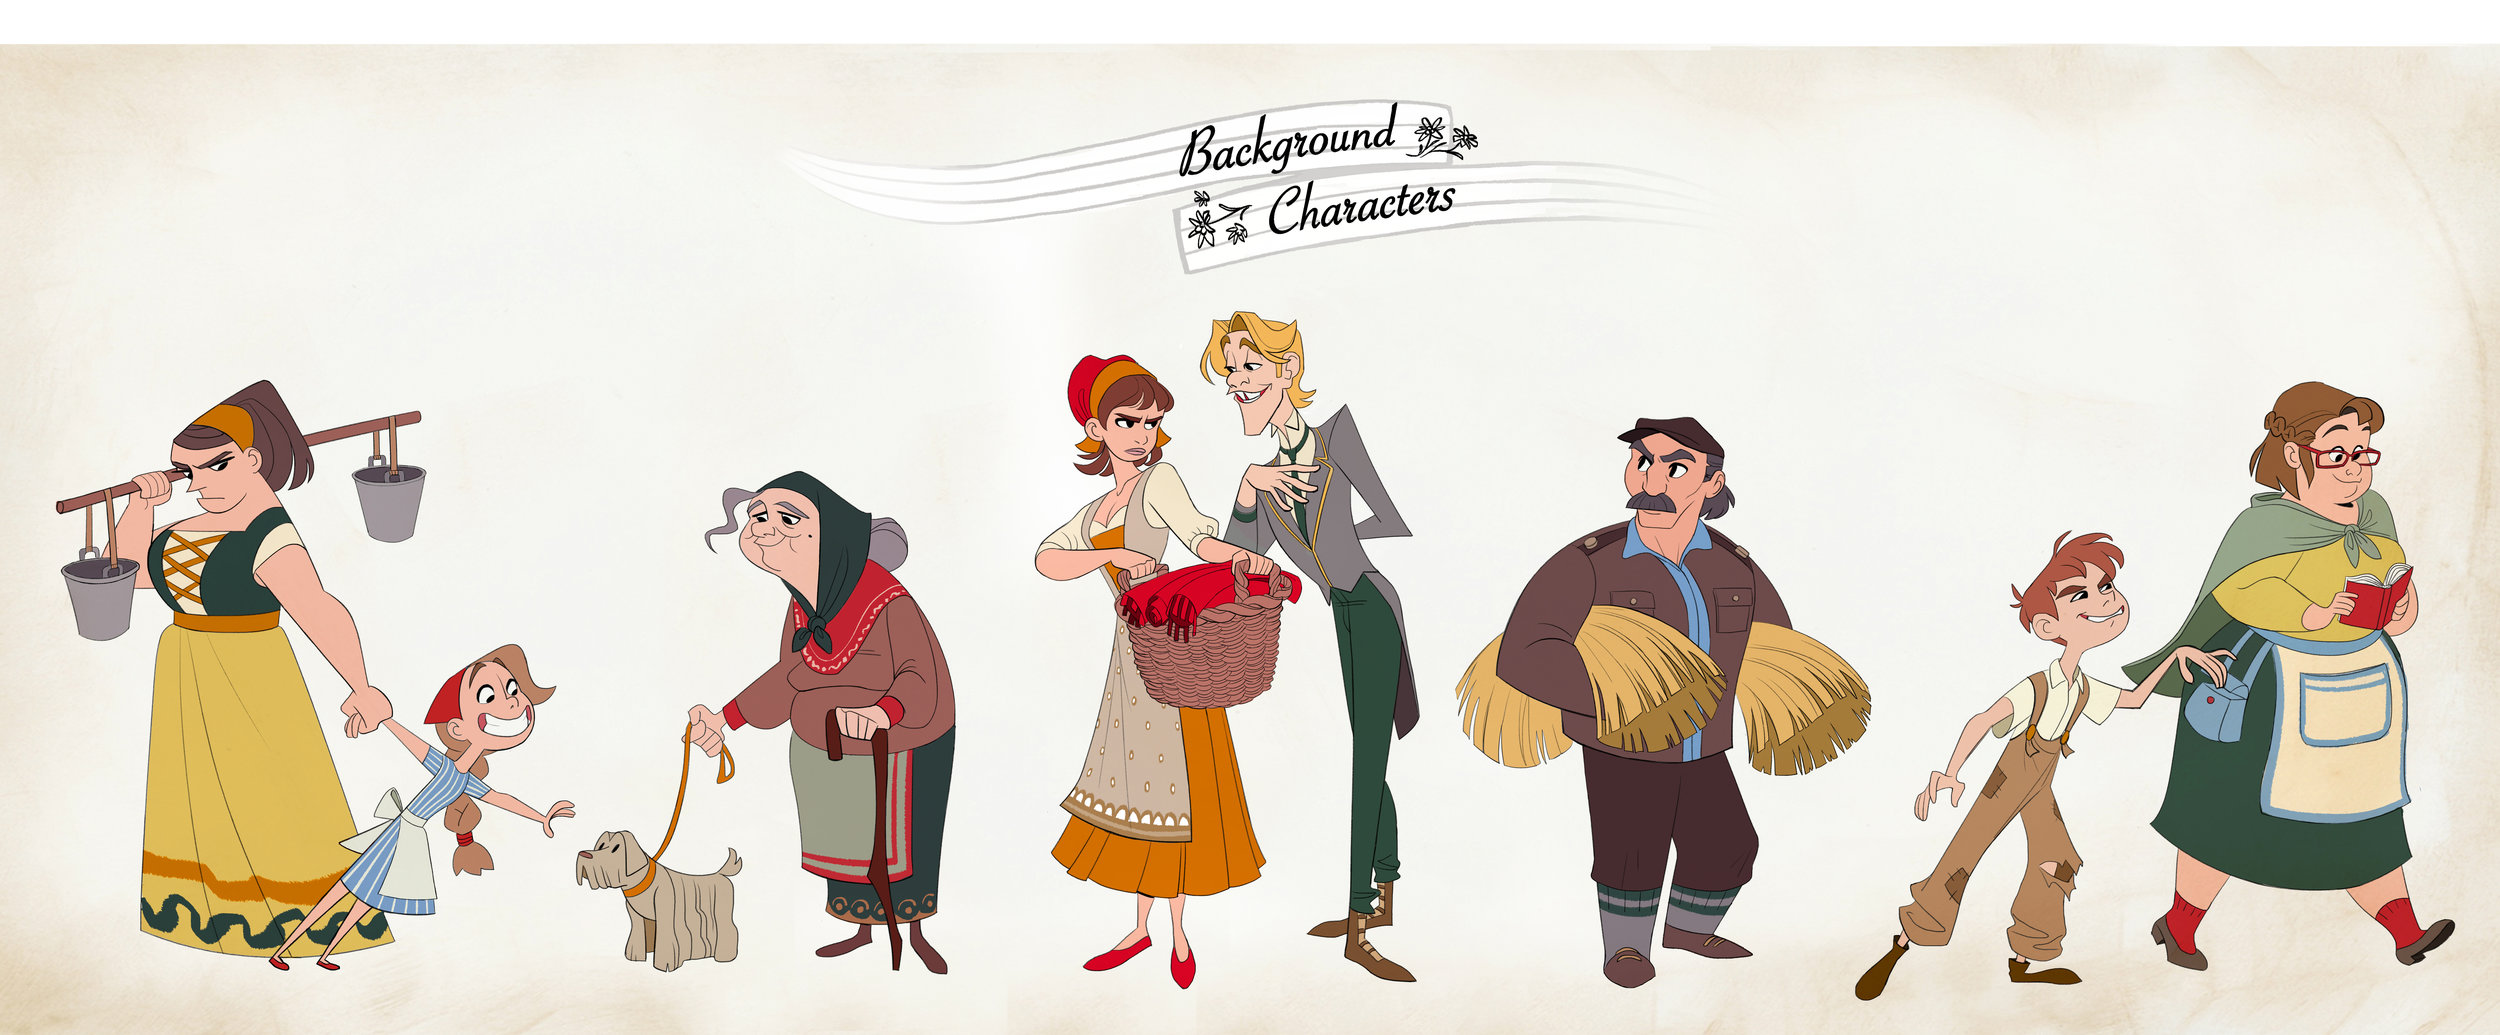 Final New background Characters 2.jpg